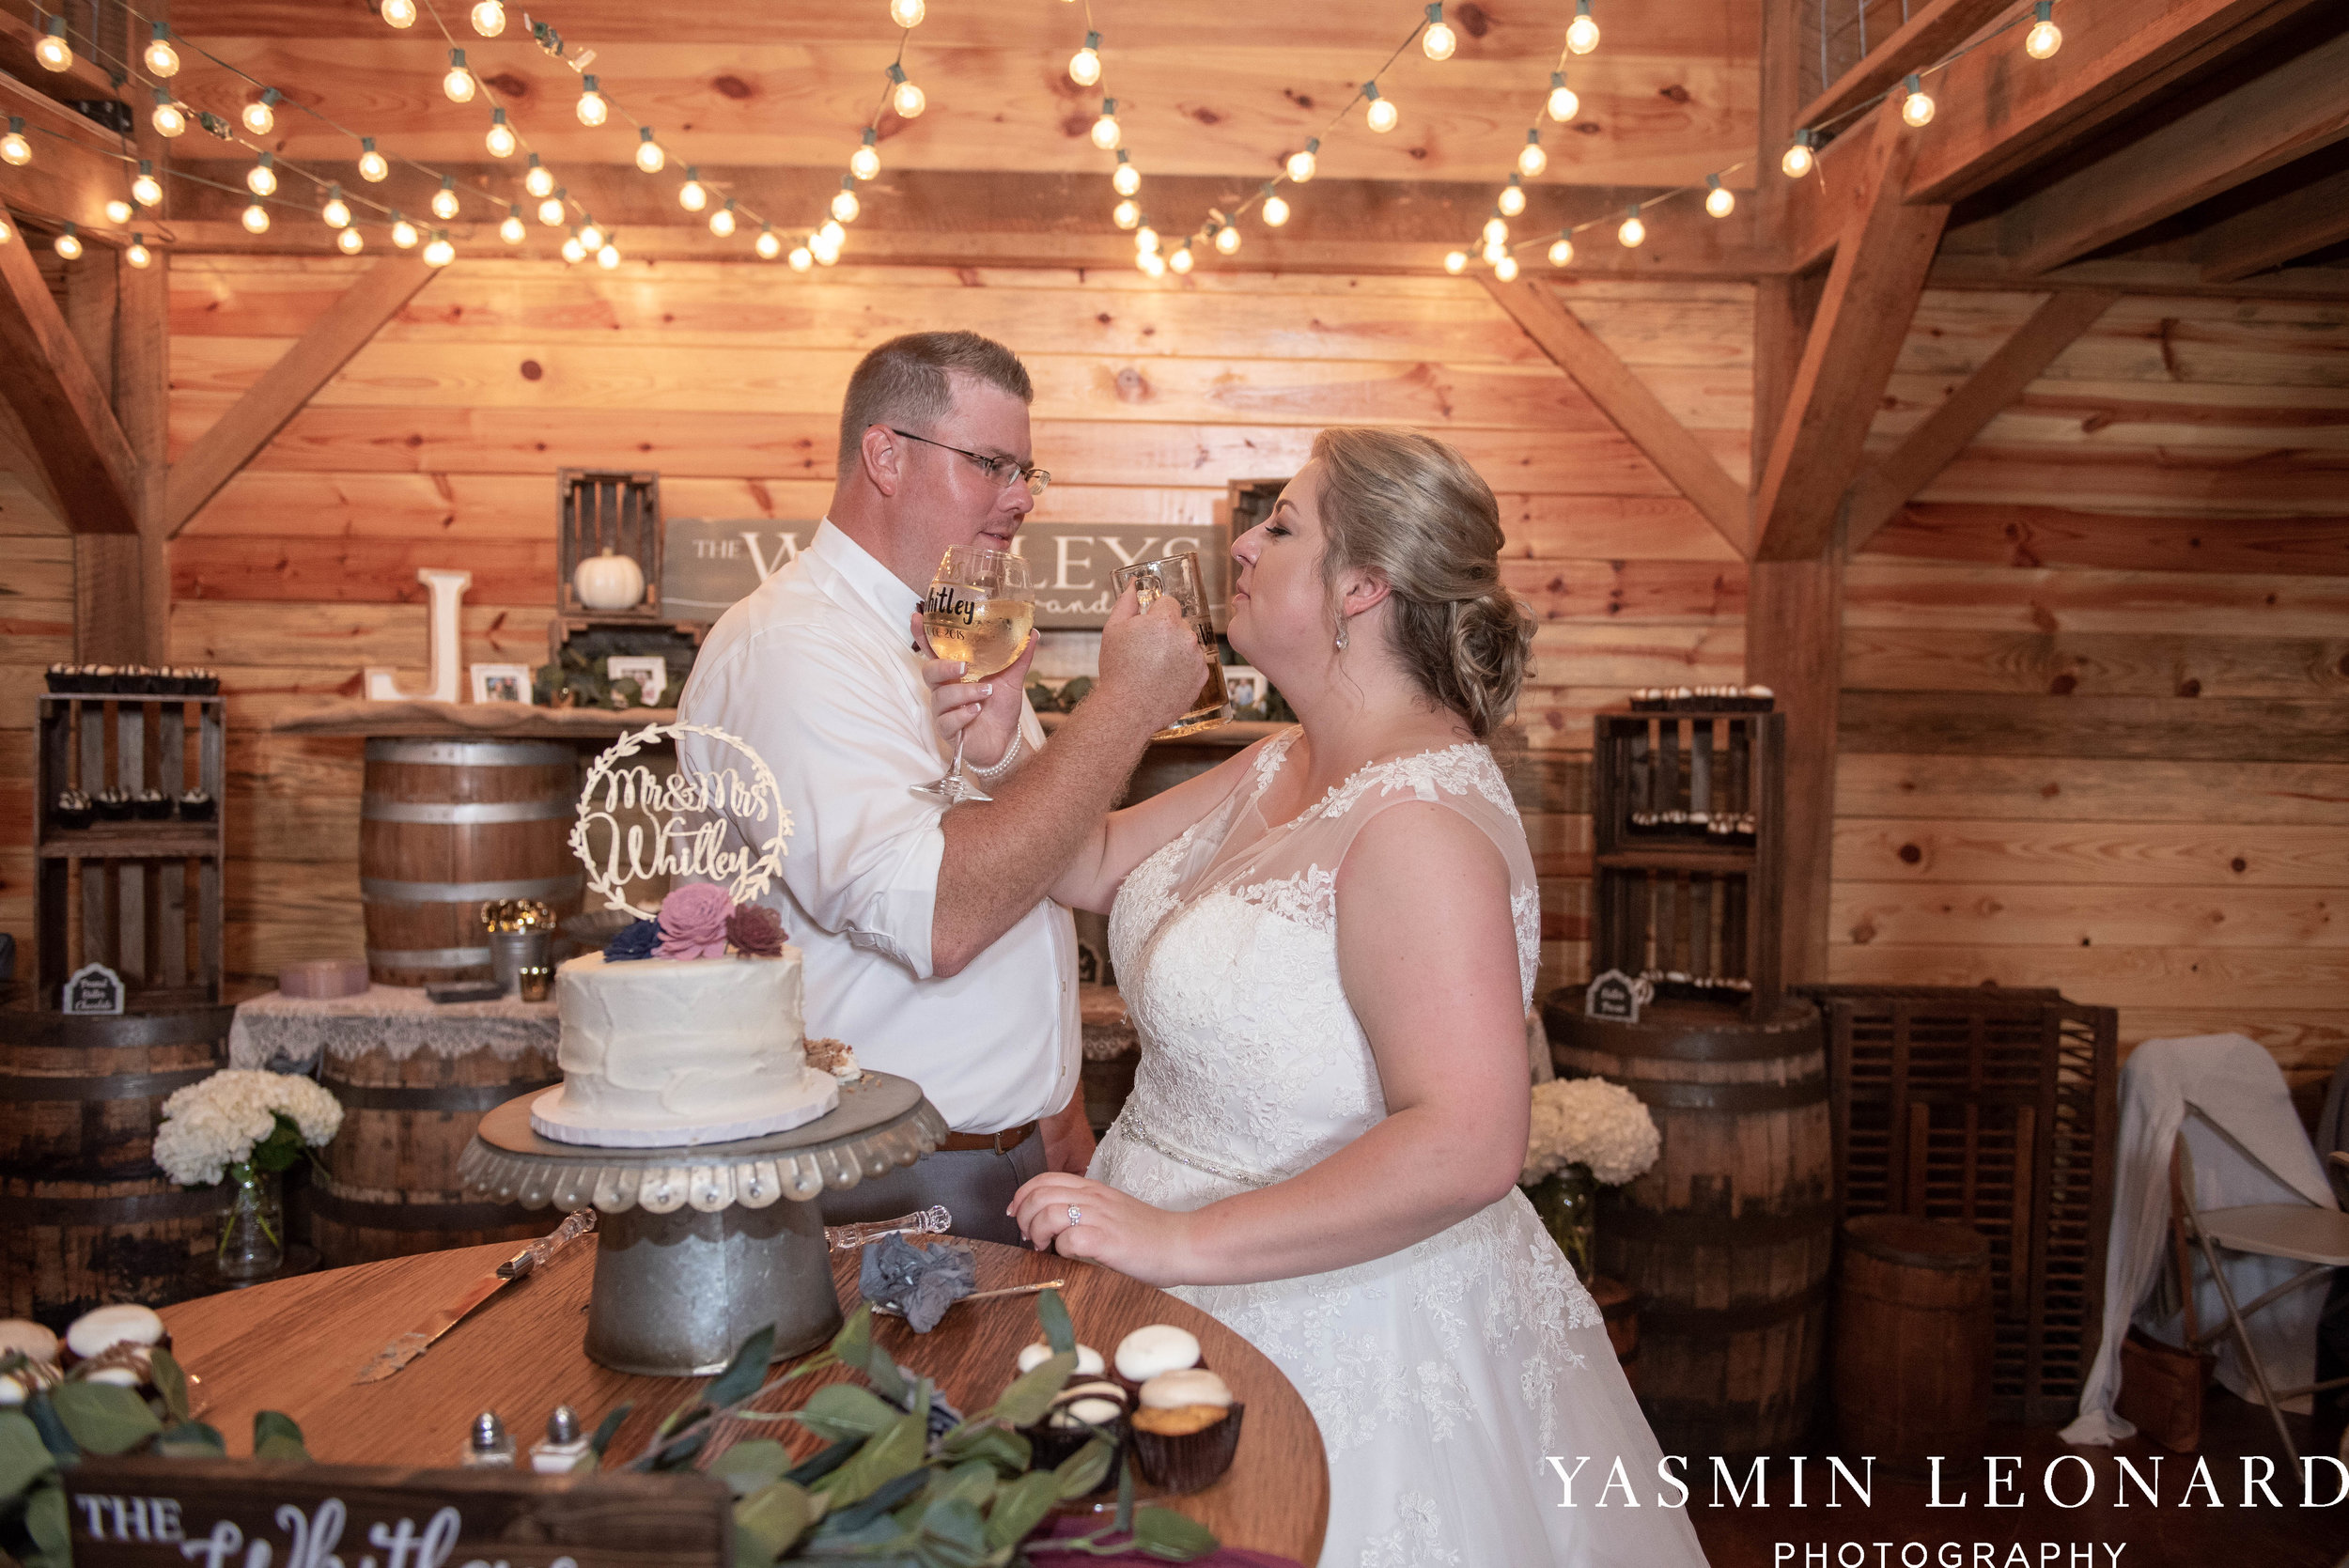 Danner Farms - NC Wedding Venues - NC Barns - Statesville NC - NC Wedding Photographer - High Point Wedding Photographer - Yasmin Leonard Photography-74.jpg